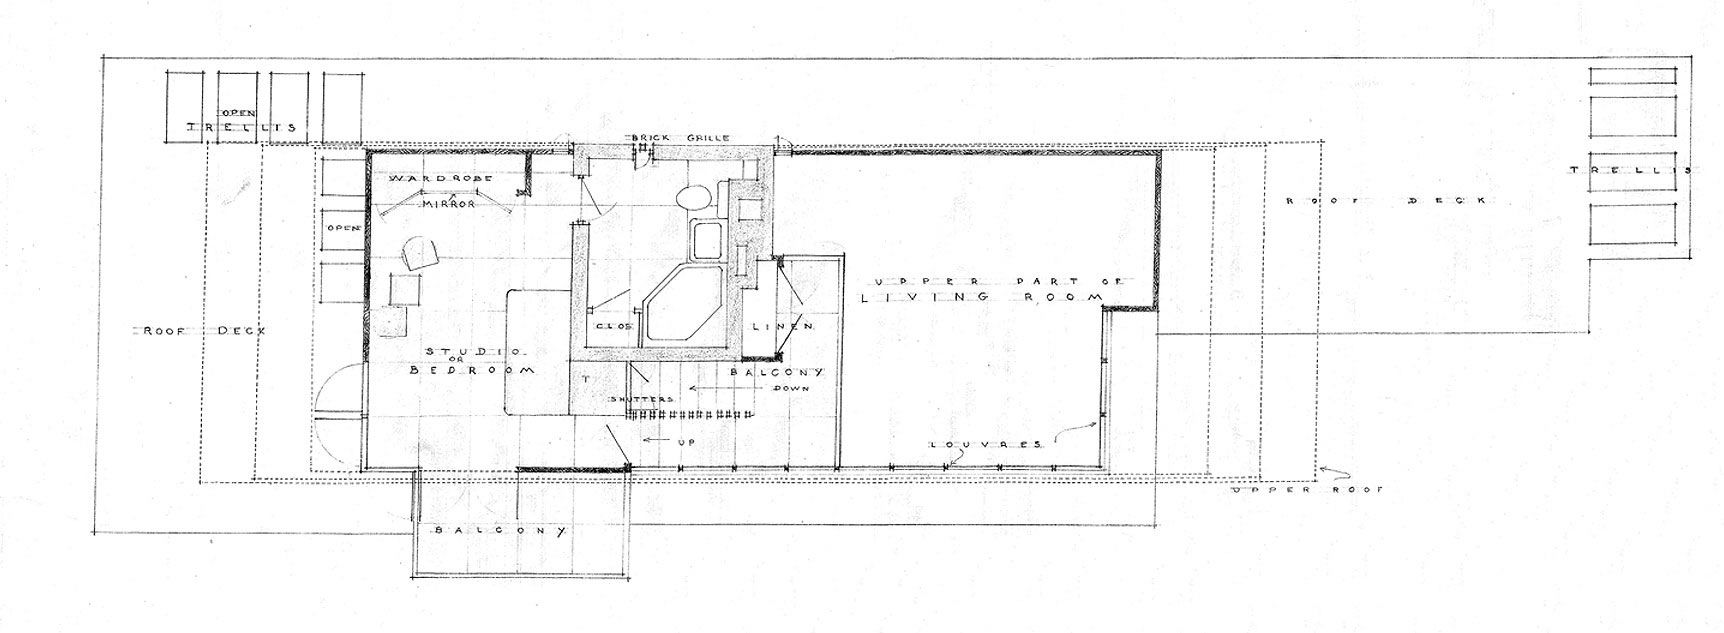 Usonian house plans usonia 1 99 invisible usonian house Frank lloyd wright house plans free